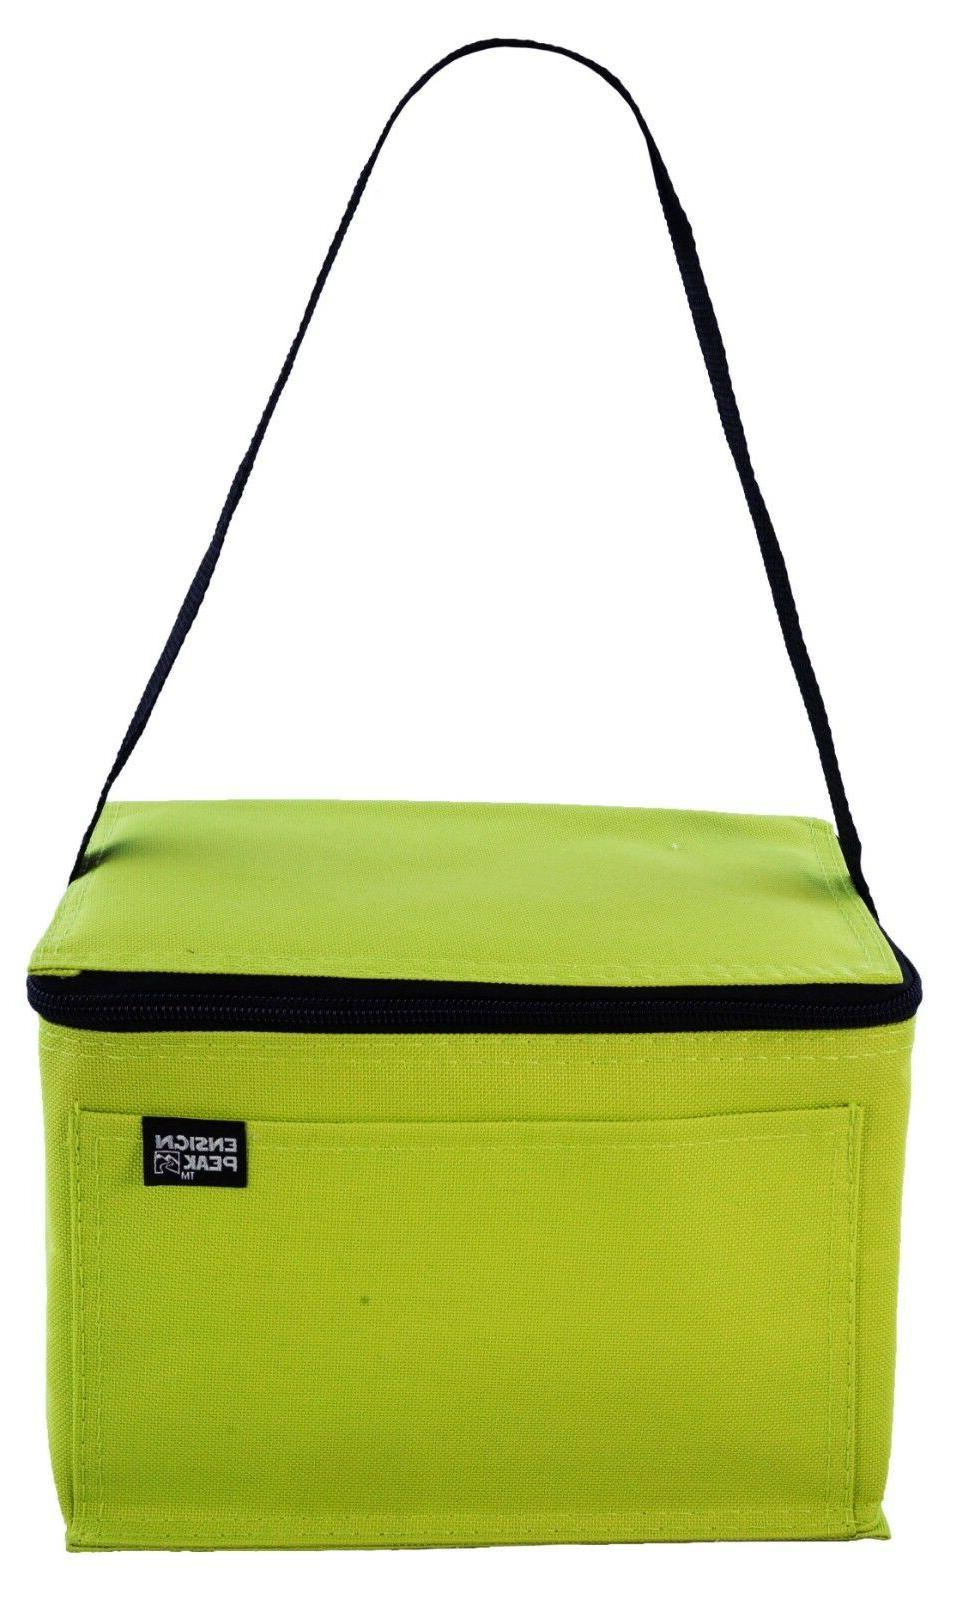 Ensign Basic 6-can Insulated Cooler with Proof